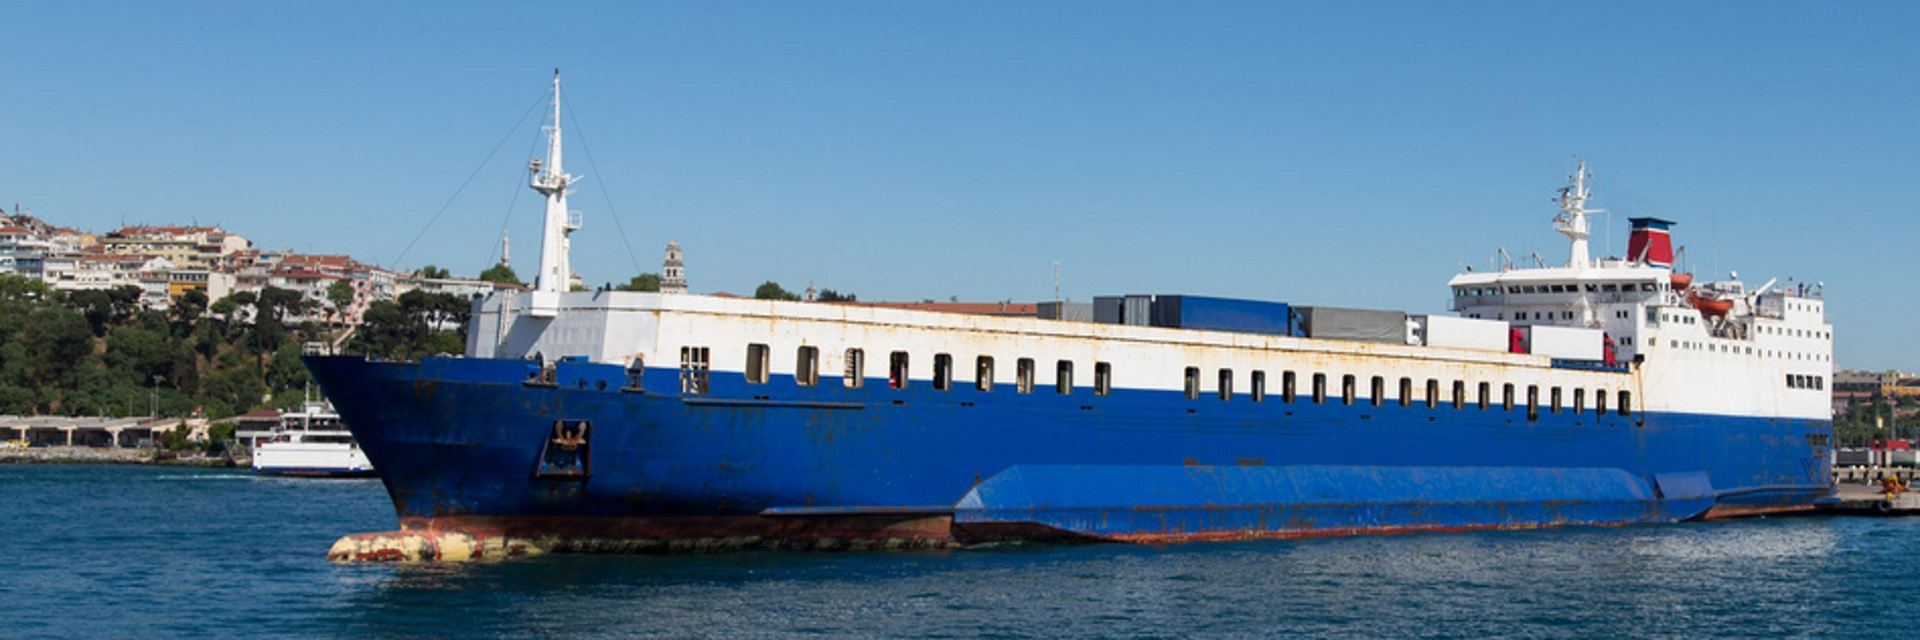 Offshore logistics service guernsey Jersey - container ship image.jpg